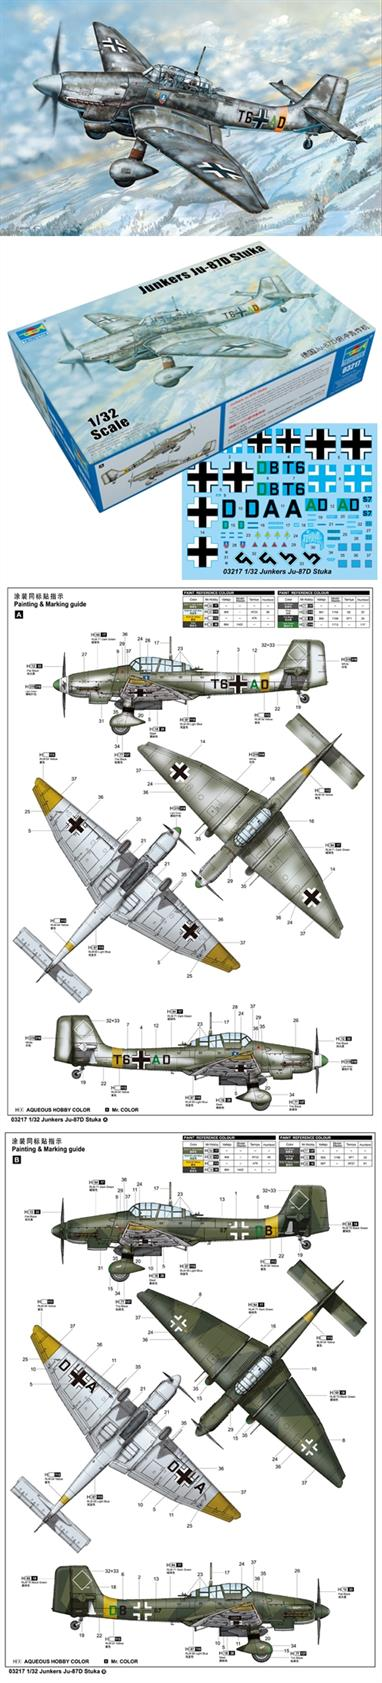 The Ju 87 Stuka dive bomber might be one of the most famous bomber during the WWII. It has been the main force in the ground support of the Air Force since the start of the Blitzkrieg.The Ju 87D is the most important series of the Stuka family,and the type Ju 87D-5 is the last divebomber version of the Stuka family, an extra armor were fitted under the fuselage, the guns in the wing were replaced by two MG 151 20mm anti tank gun. The Ju 87D-5 made it's first battle in July 1943 in the Battle of Kursk.